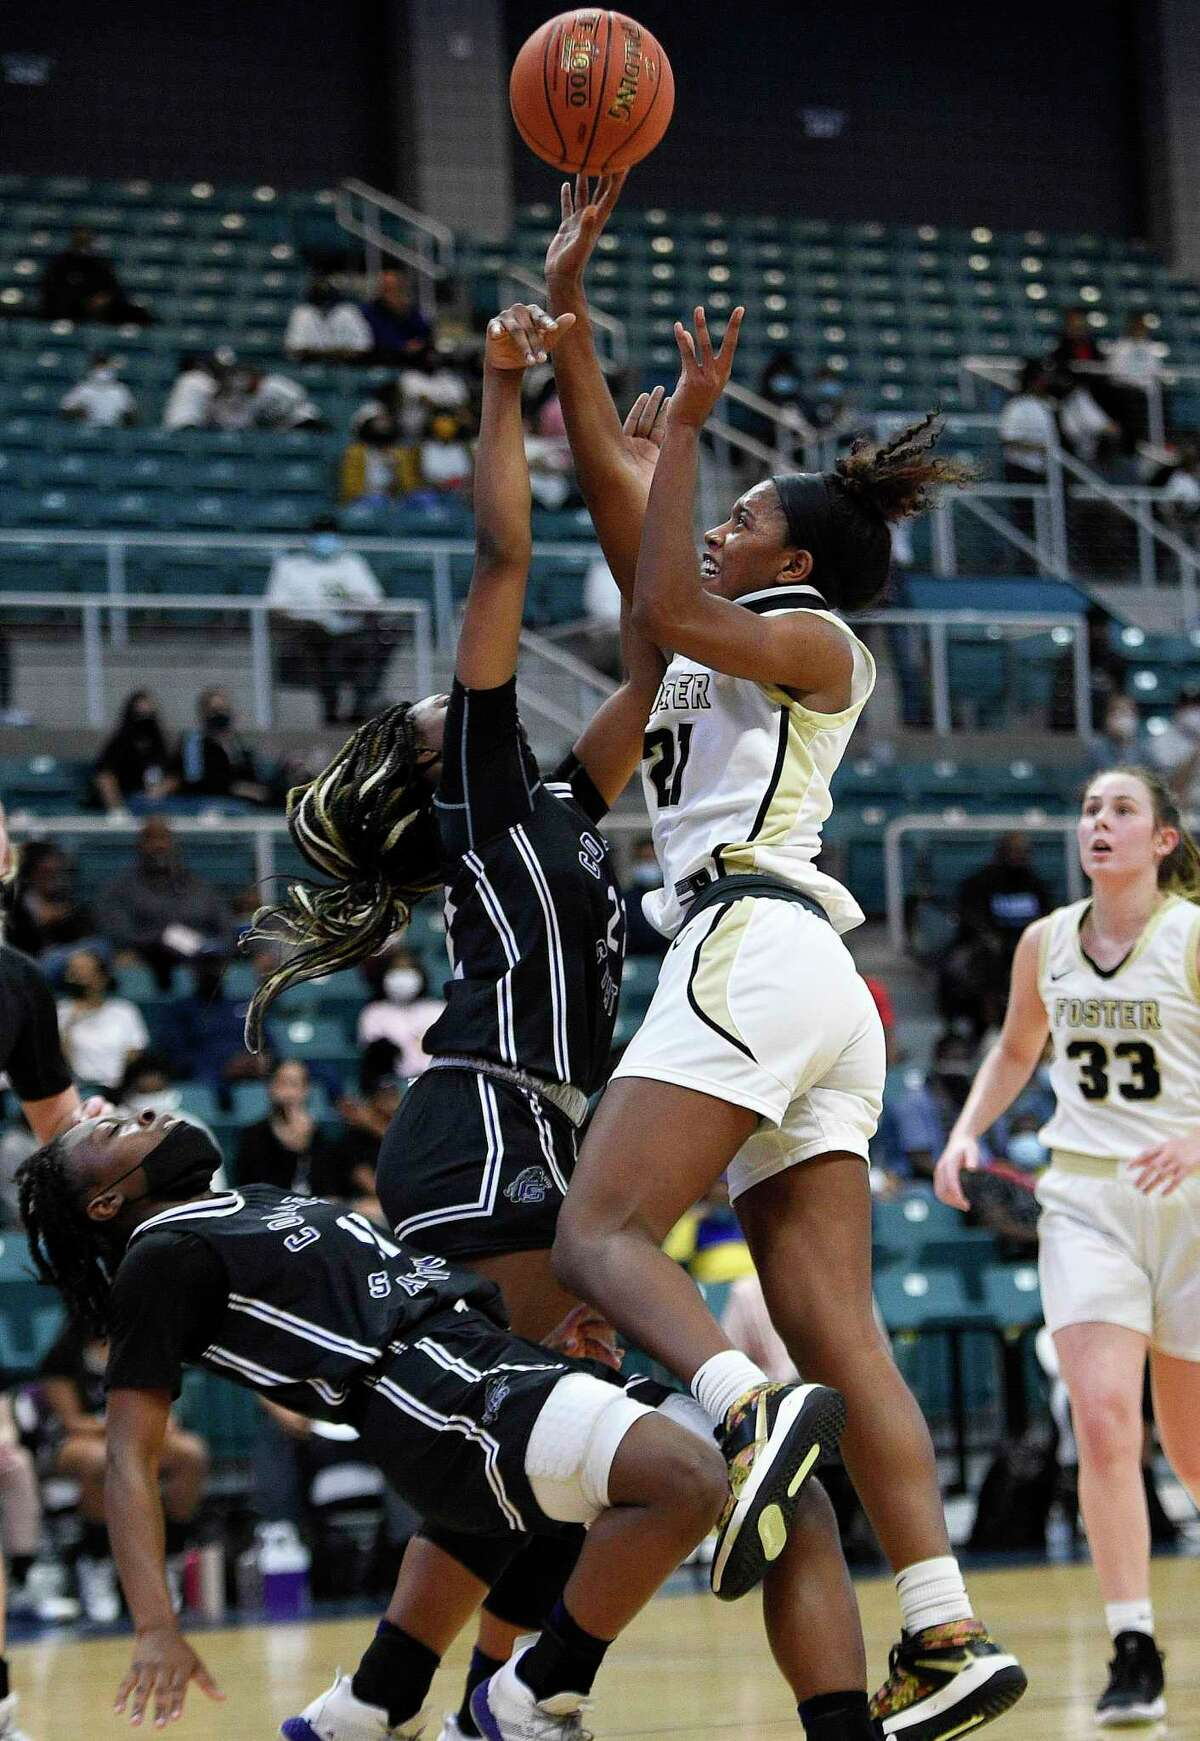 Foster's Kaiya Wynn, right, shoots as College Station's Jayden Davenport, left, defends during the first half of a 5A Region III semifinal high school basketball playoff game, Friday, Feb. 26, 2021, in Katy, TX.